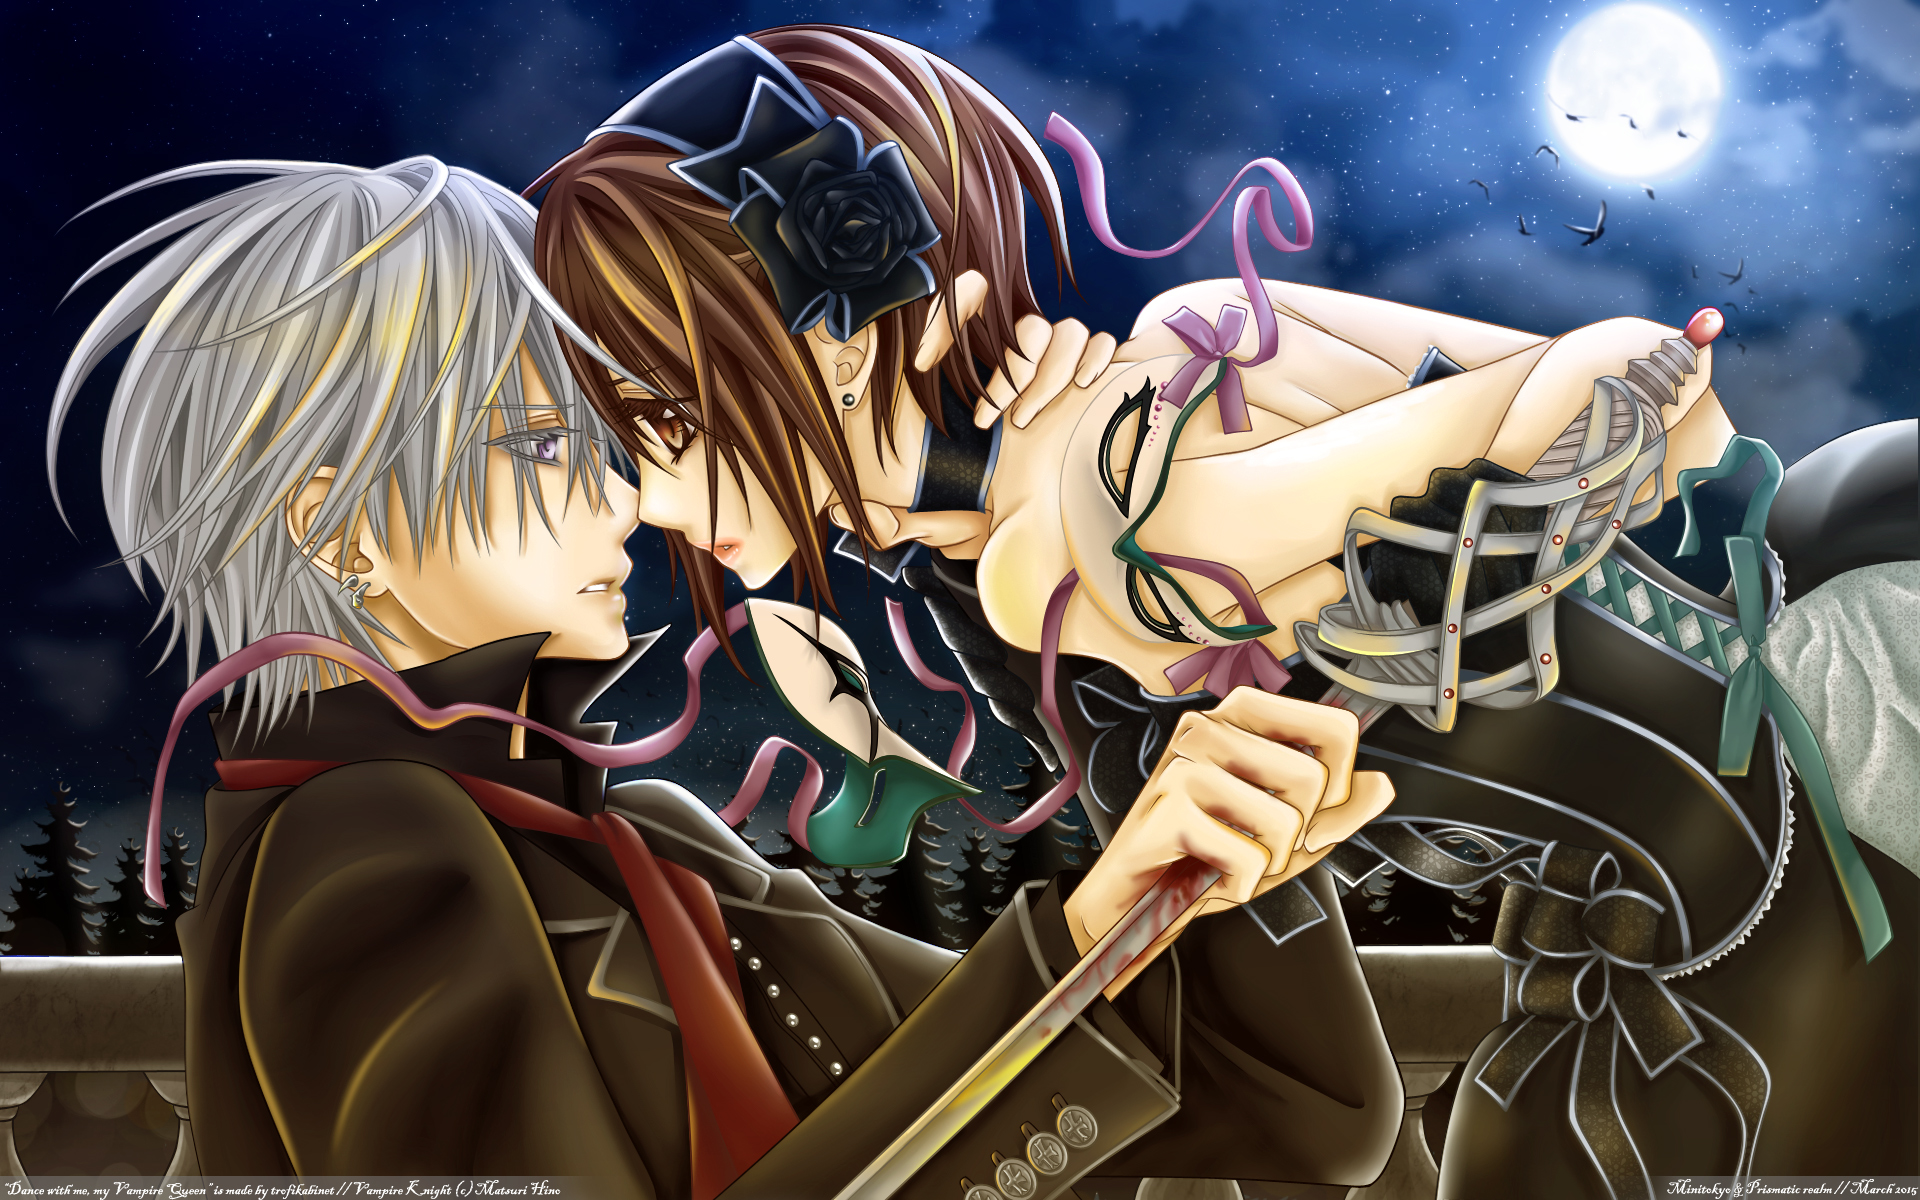 vampire knight - wallpaper and scan gallery - minitokyo